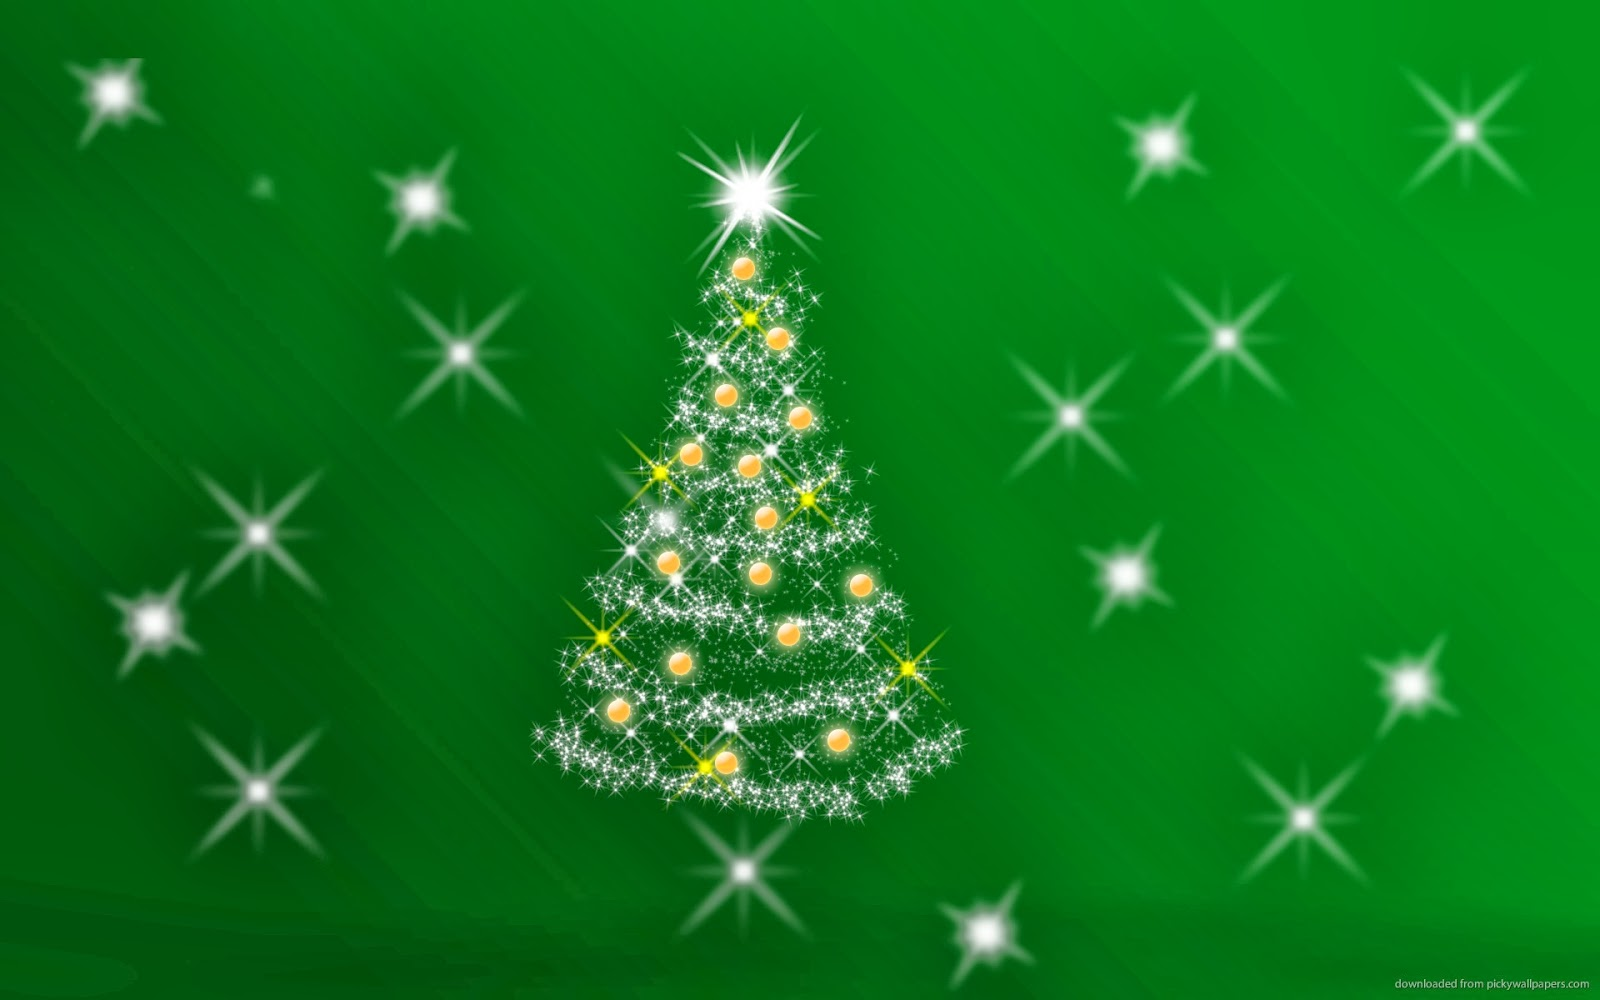 Green Christmas Background HD Wallpaper - HD Wallpapers Blog